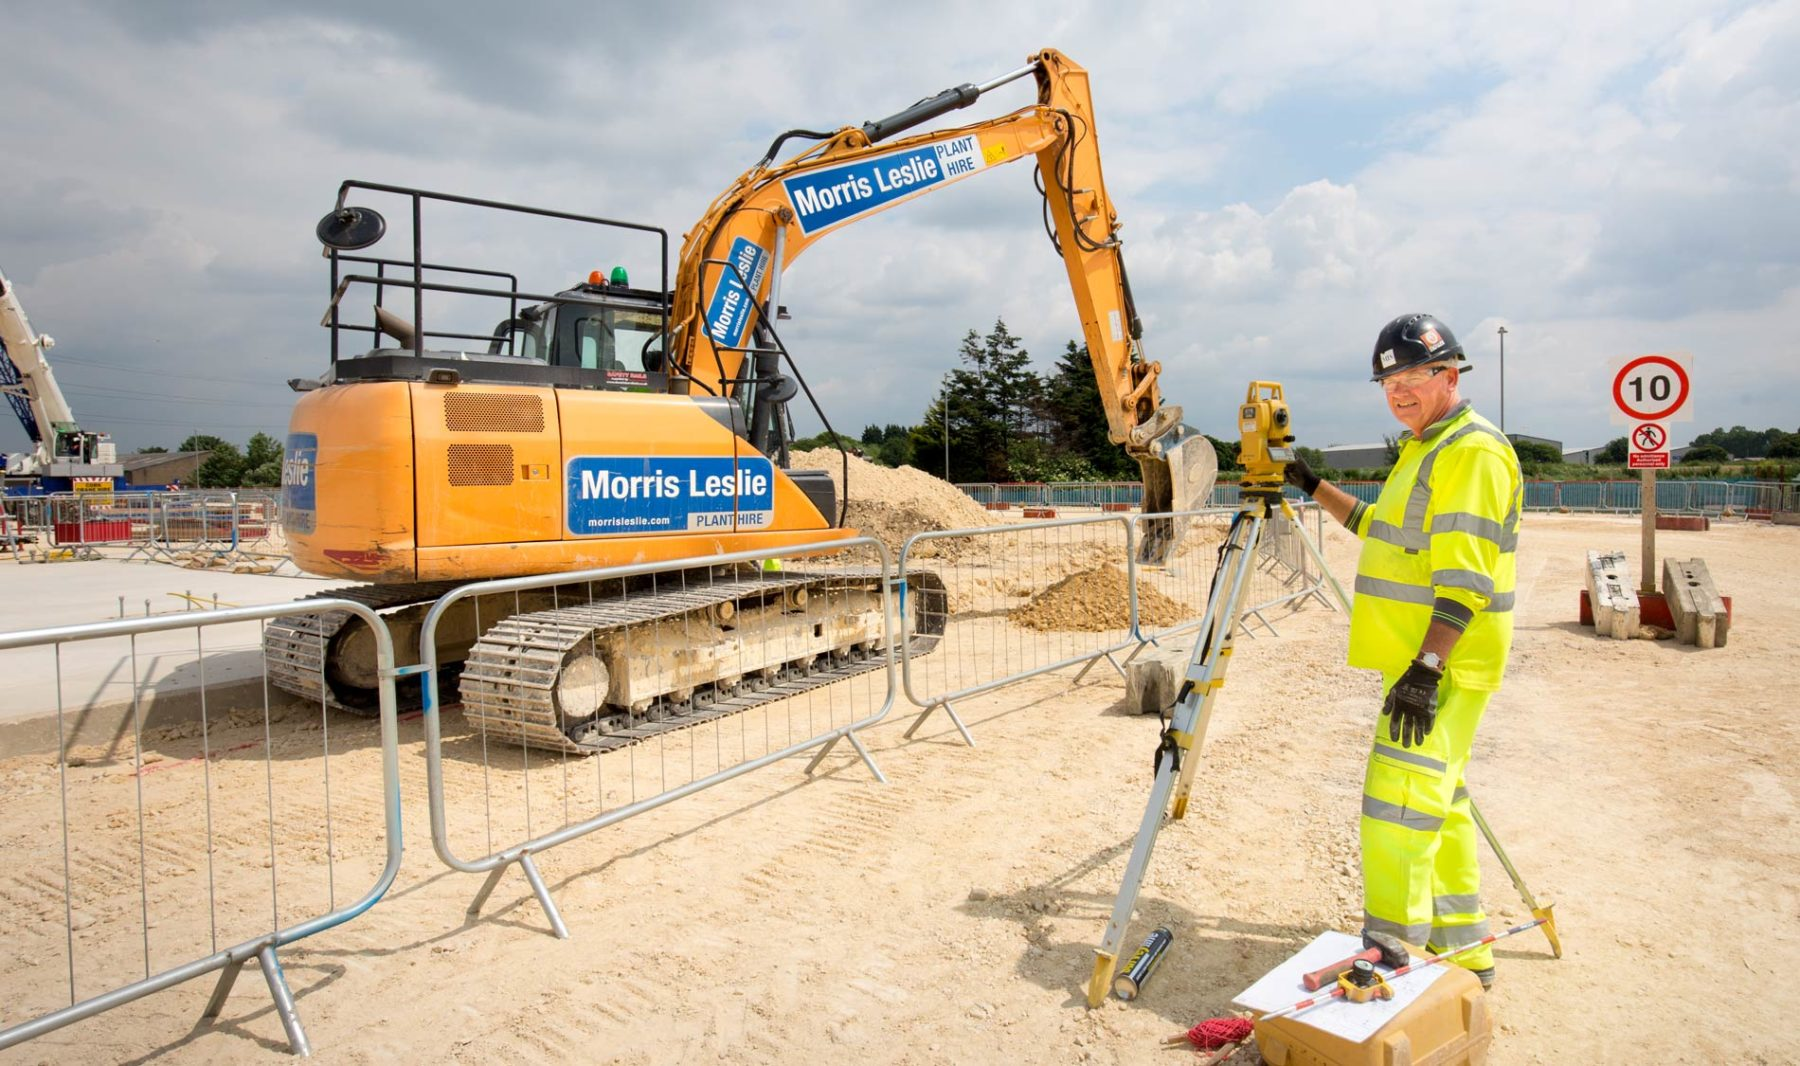 Excavator on site with surveyor and theodolite starting foundation work